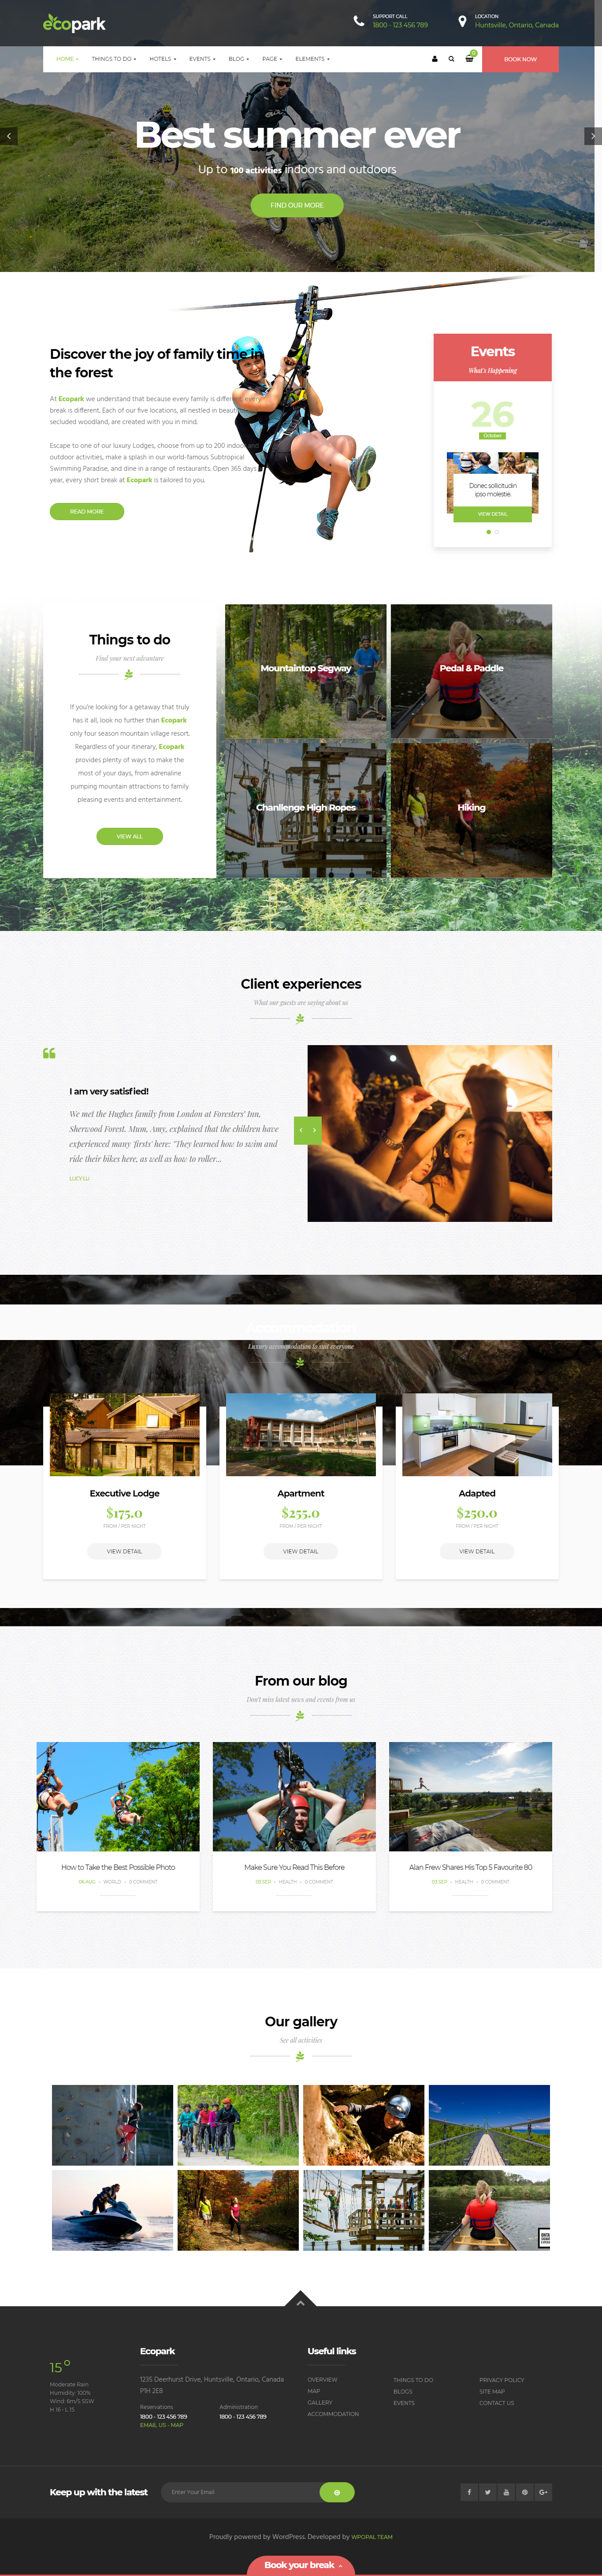 Ecopark- Best Premium Outdoor Activities WordPress Theme